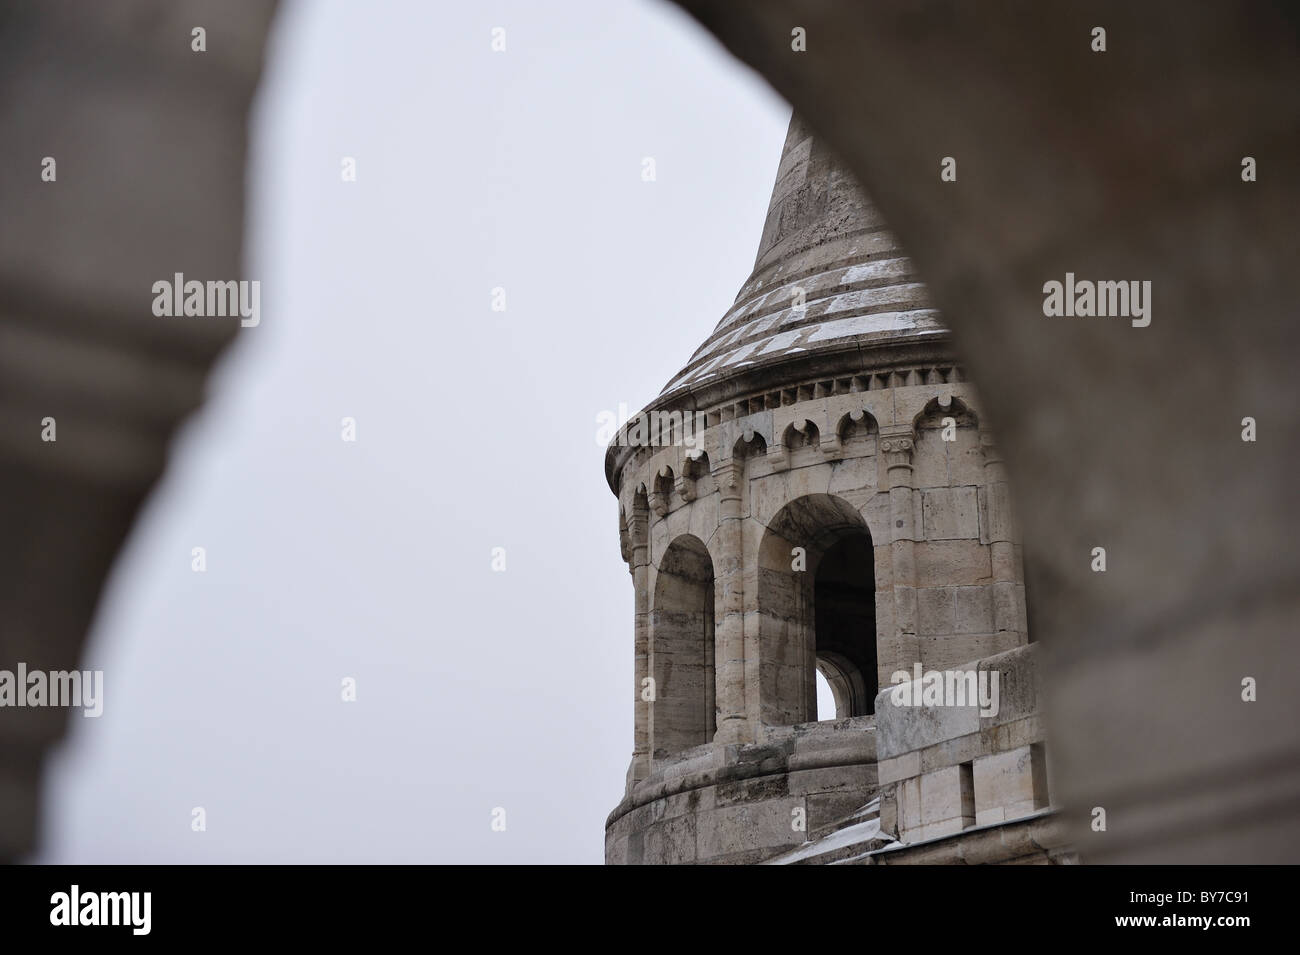 View of Fisherman's Bastion in Budapest - Stock Image